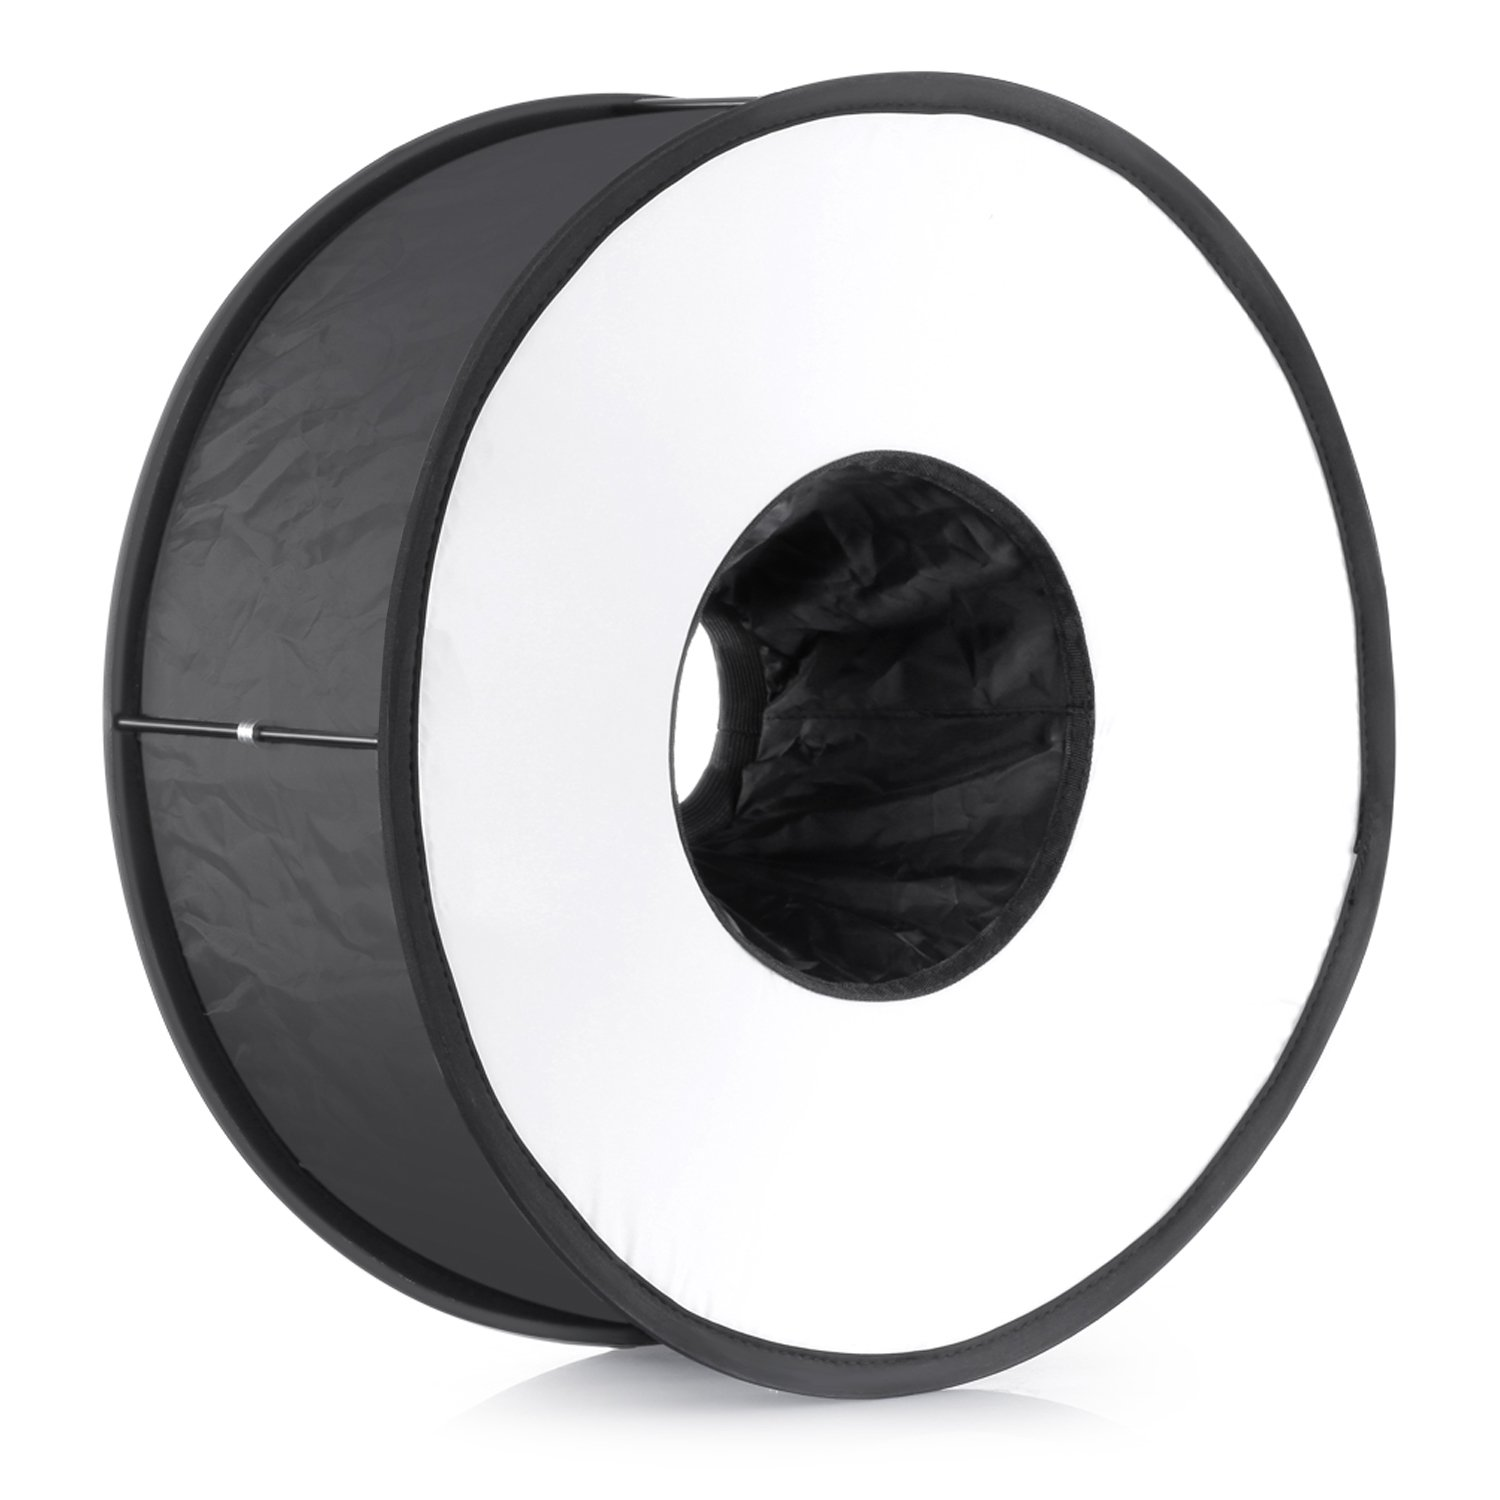 Neewer 18''/45cm Round Universal Collapsible Magnetic Ring Flash Diffuser Soft Box for Canon, Nikon, Yongnuo, Sony(Simplified Version) by Neewer